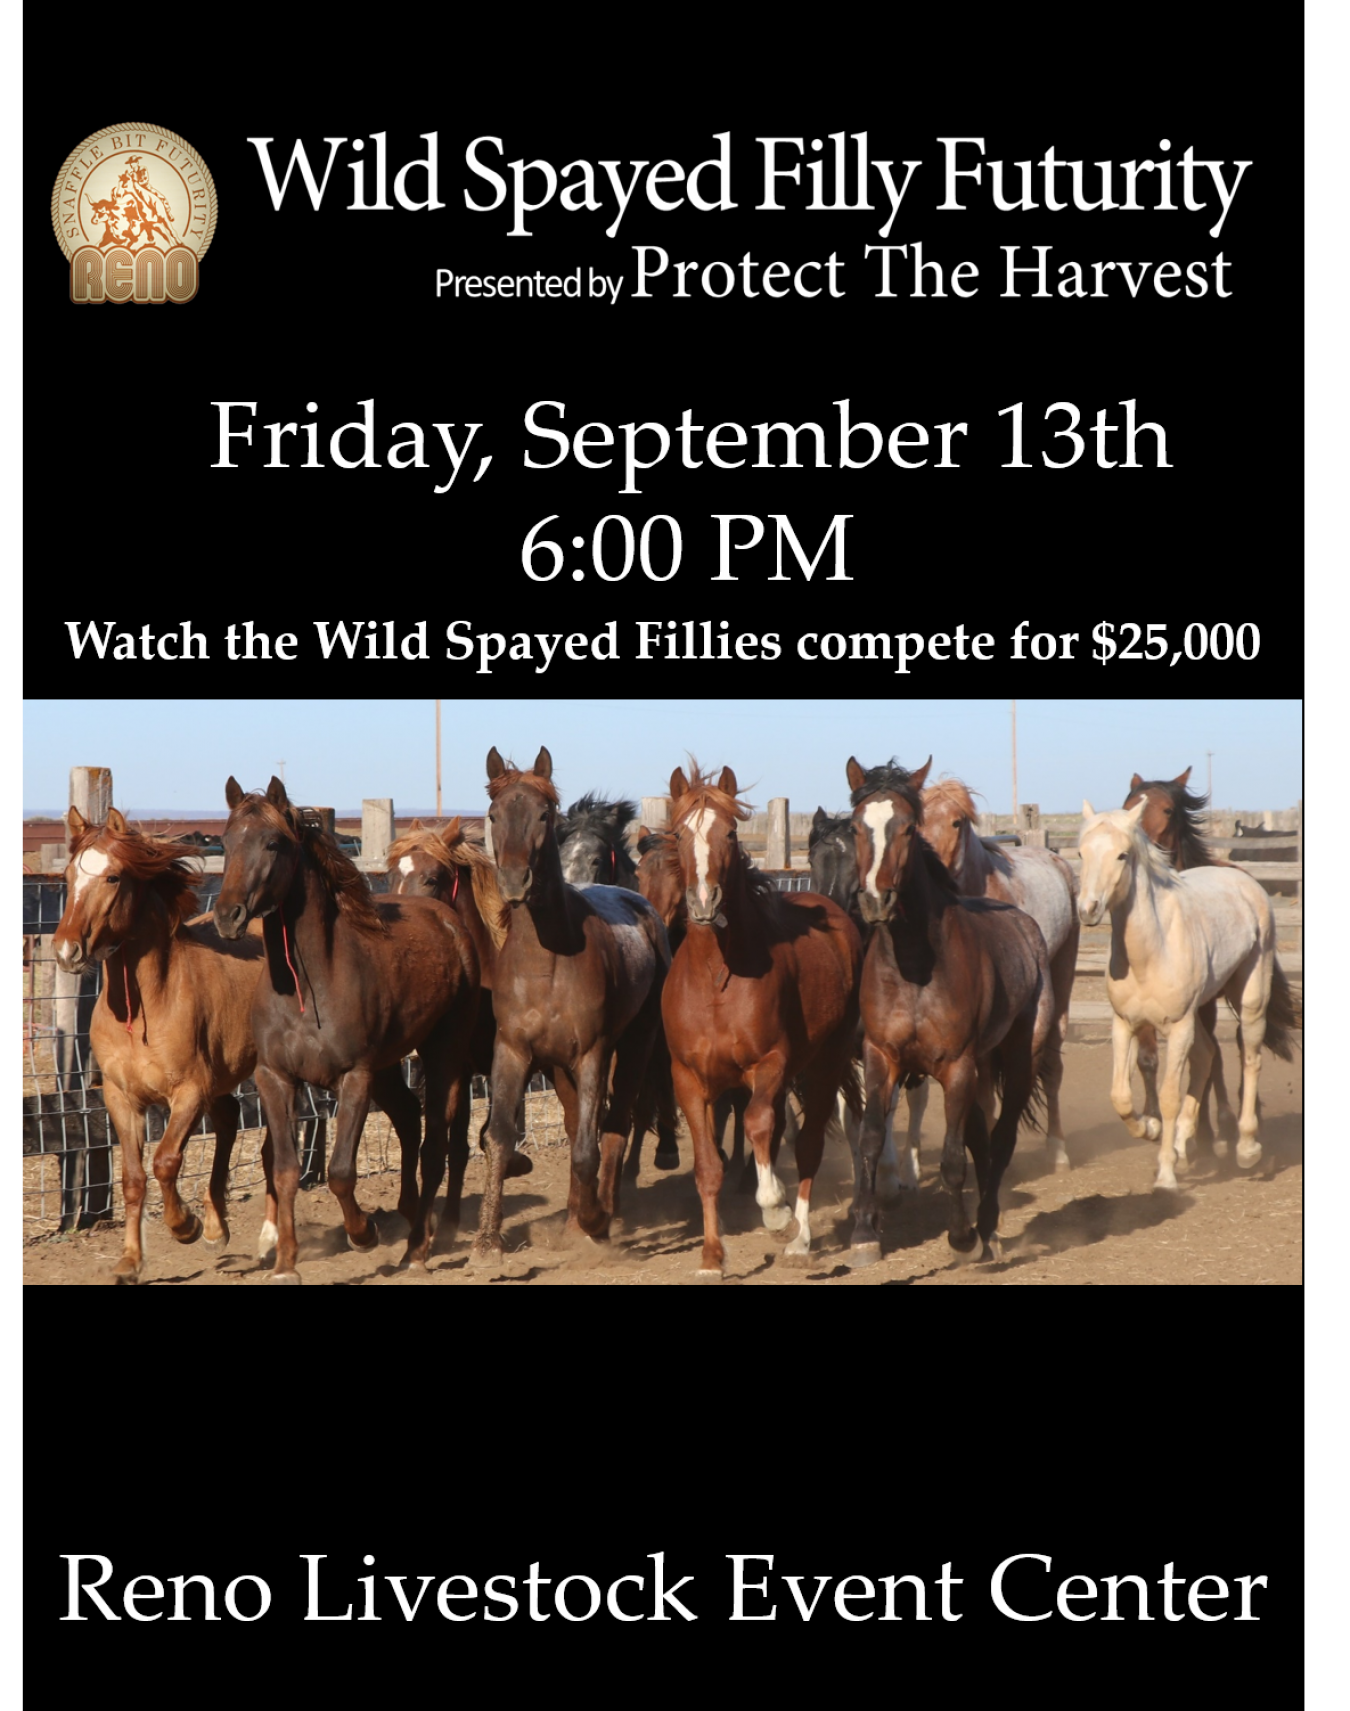 Watch the Wild Spayed Filly Futurity Live!